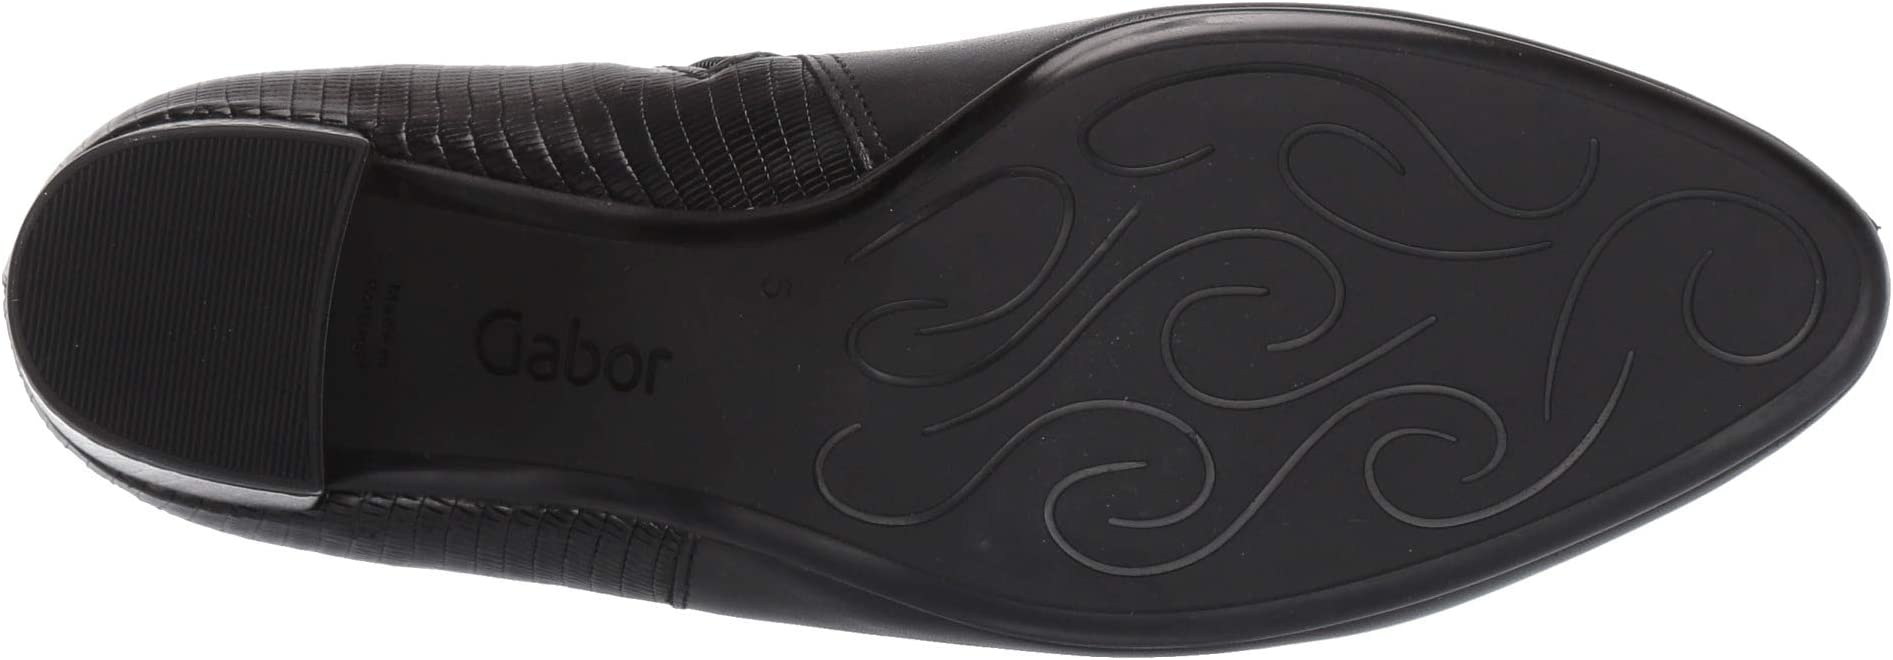 Gabor Gabor 35.800 | Women's shoes | 2020 Newest